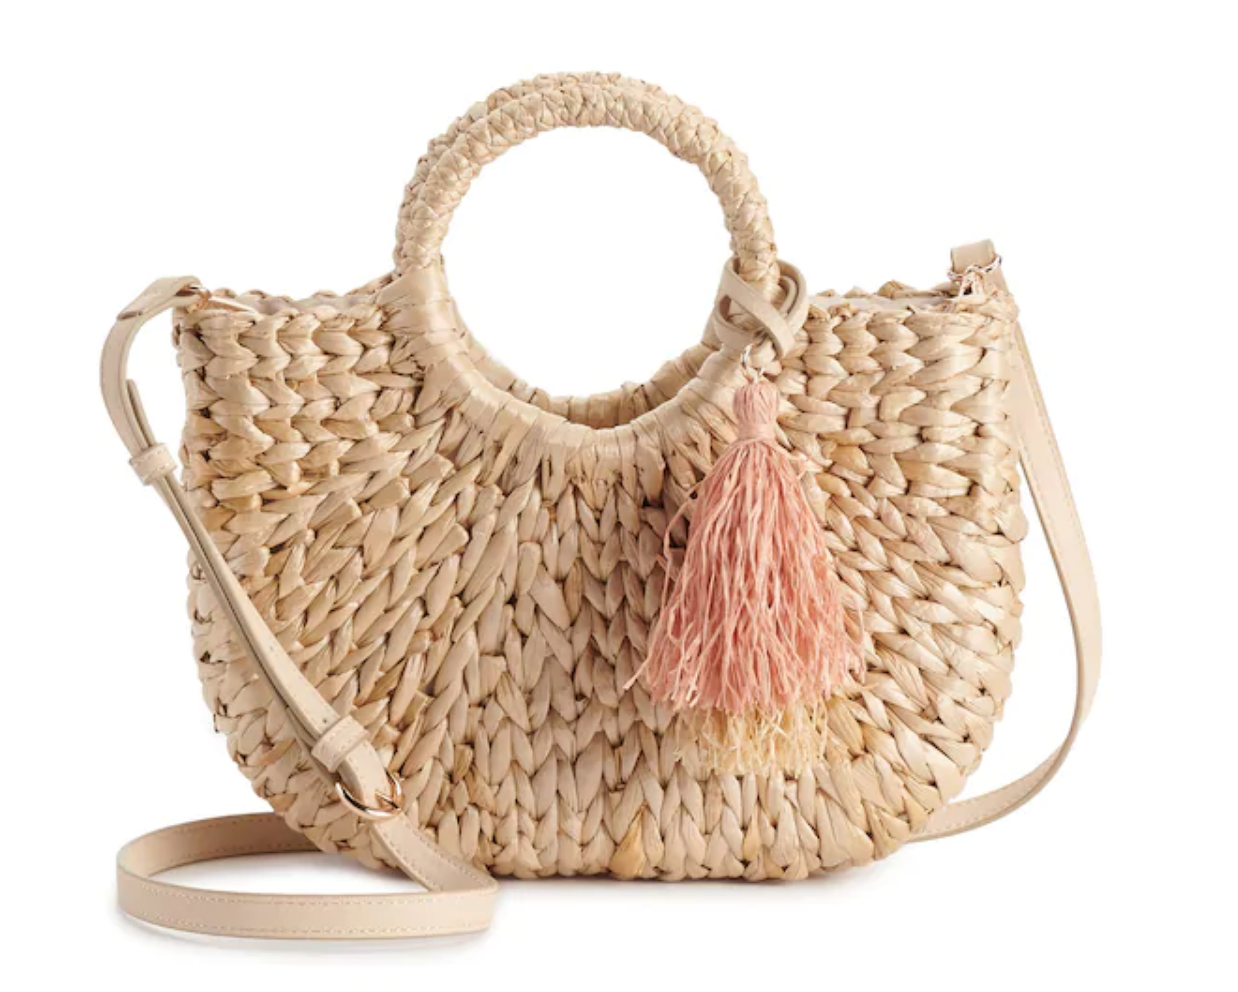 Rose gold straw handbag LC Lauren Conrad Kohls